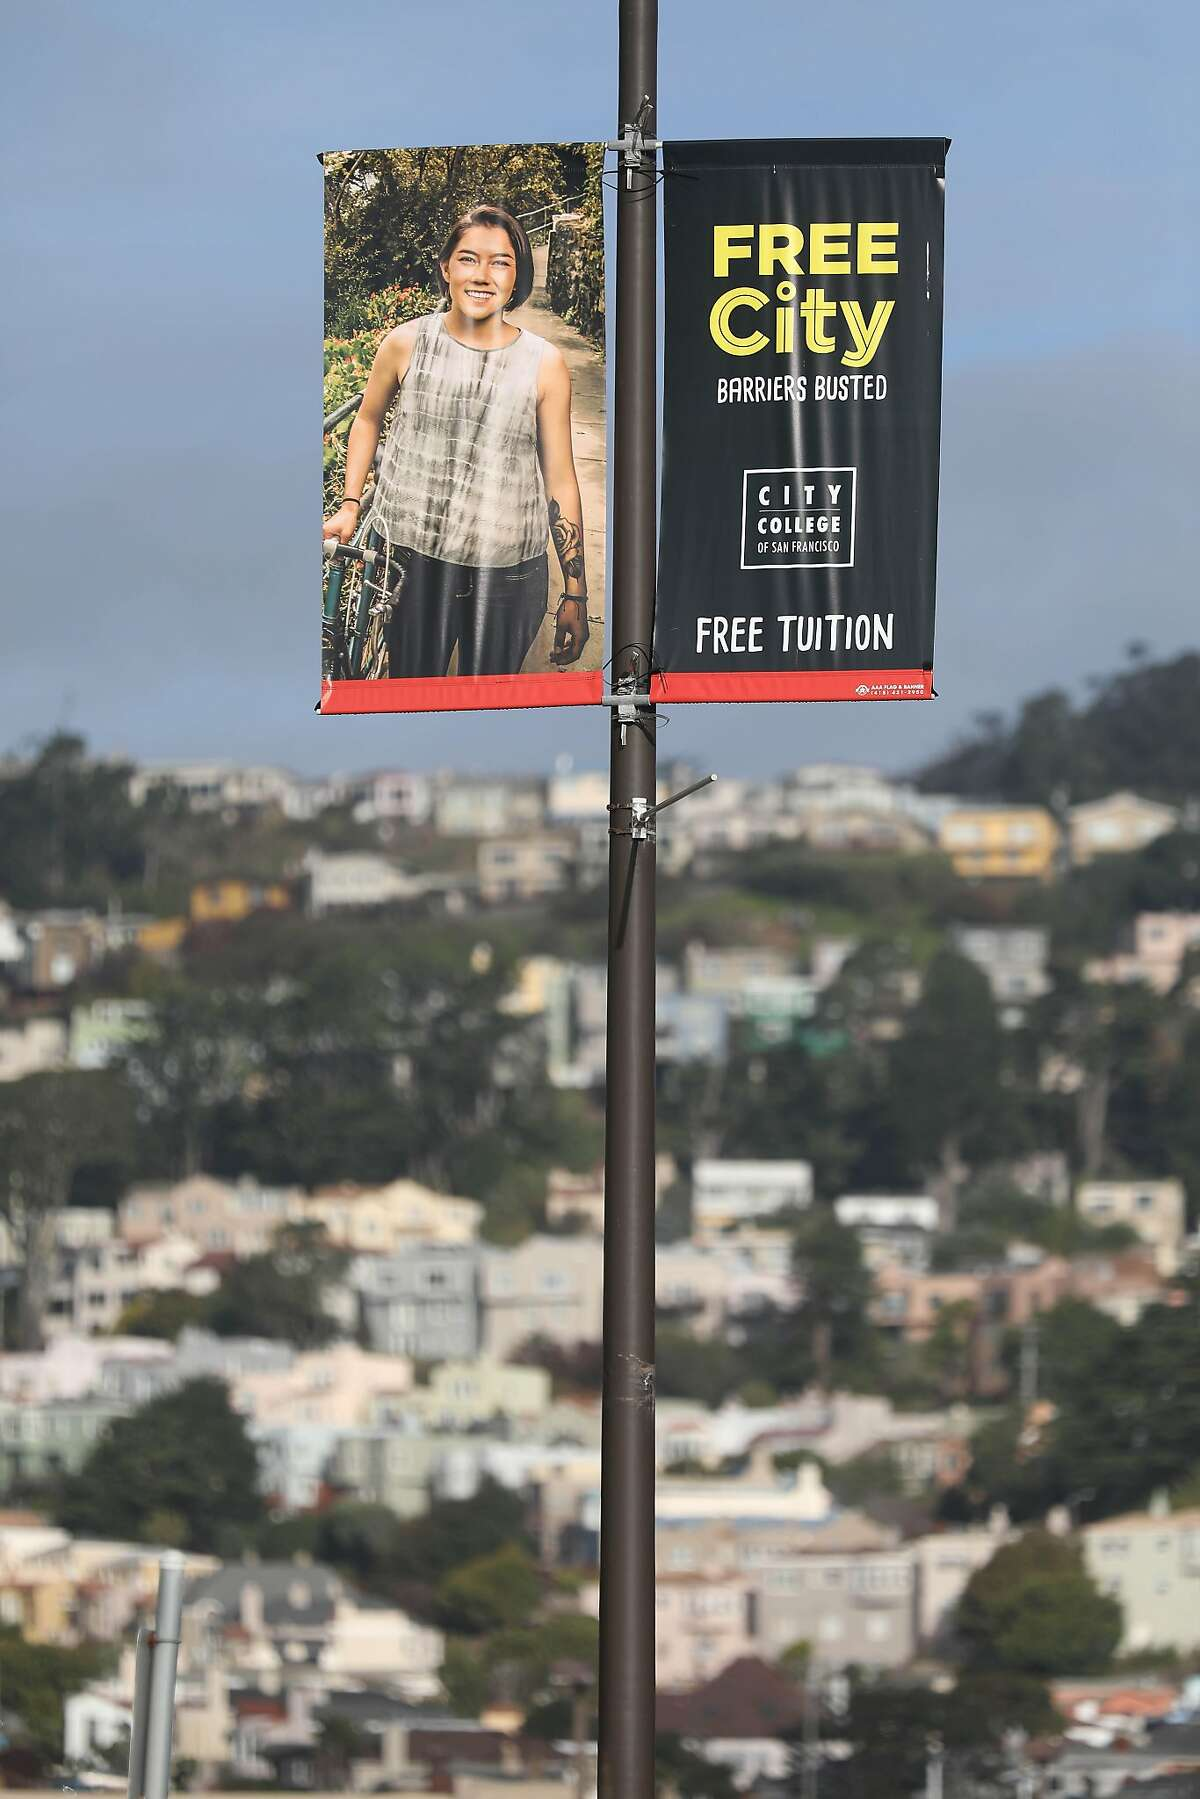 A free City College banner hangs on a light pole along Frida Kahlo Way on Tuesday, December 18, 2018 in San Francisco, Calif.